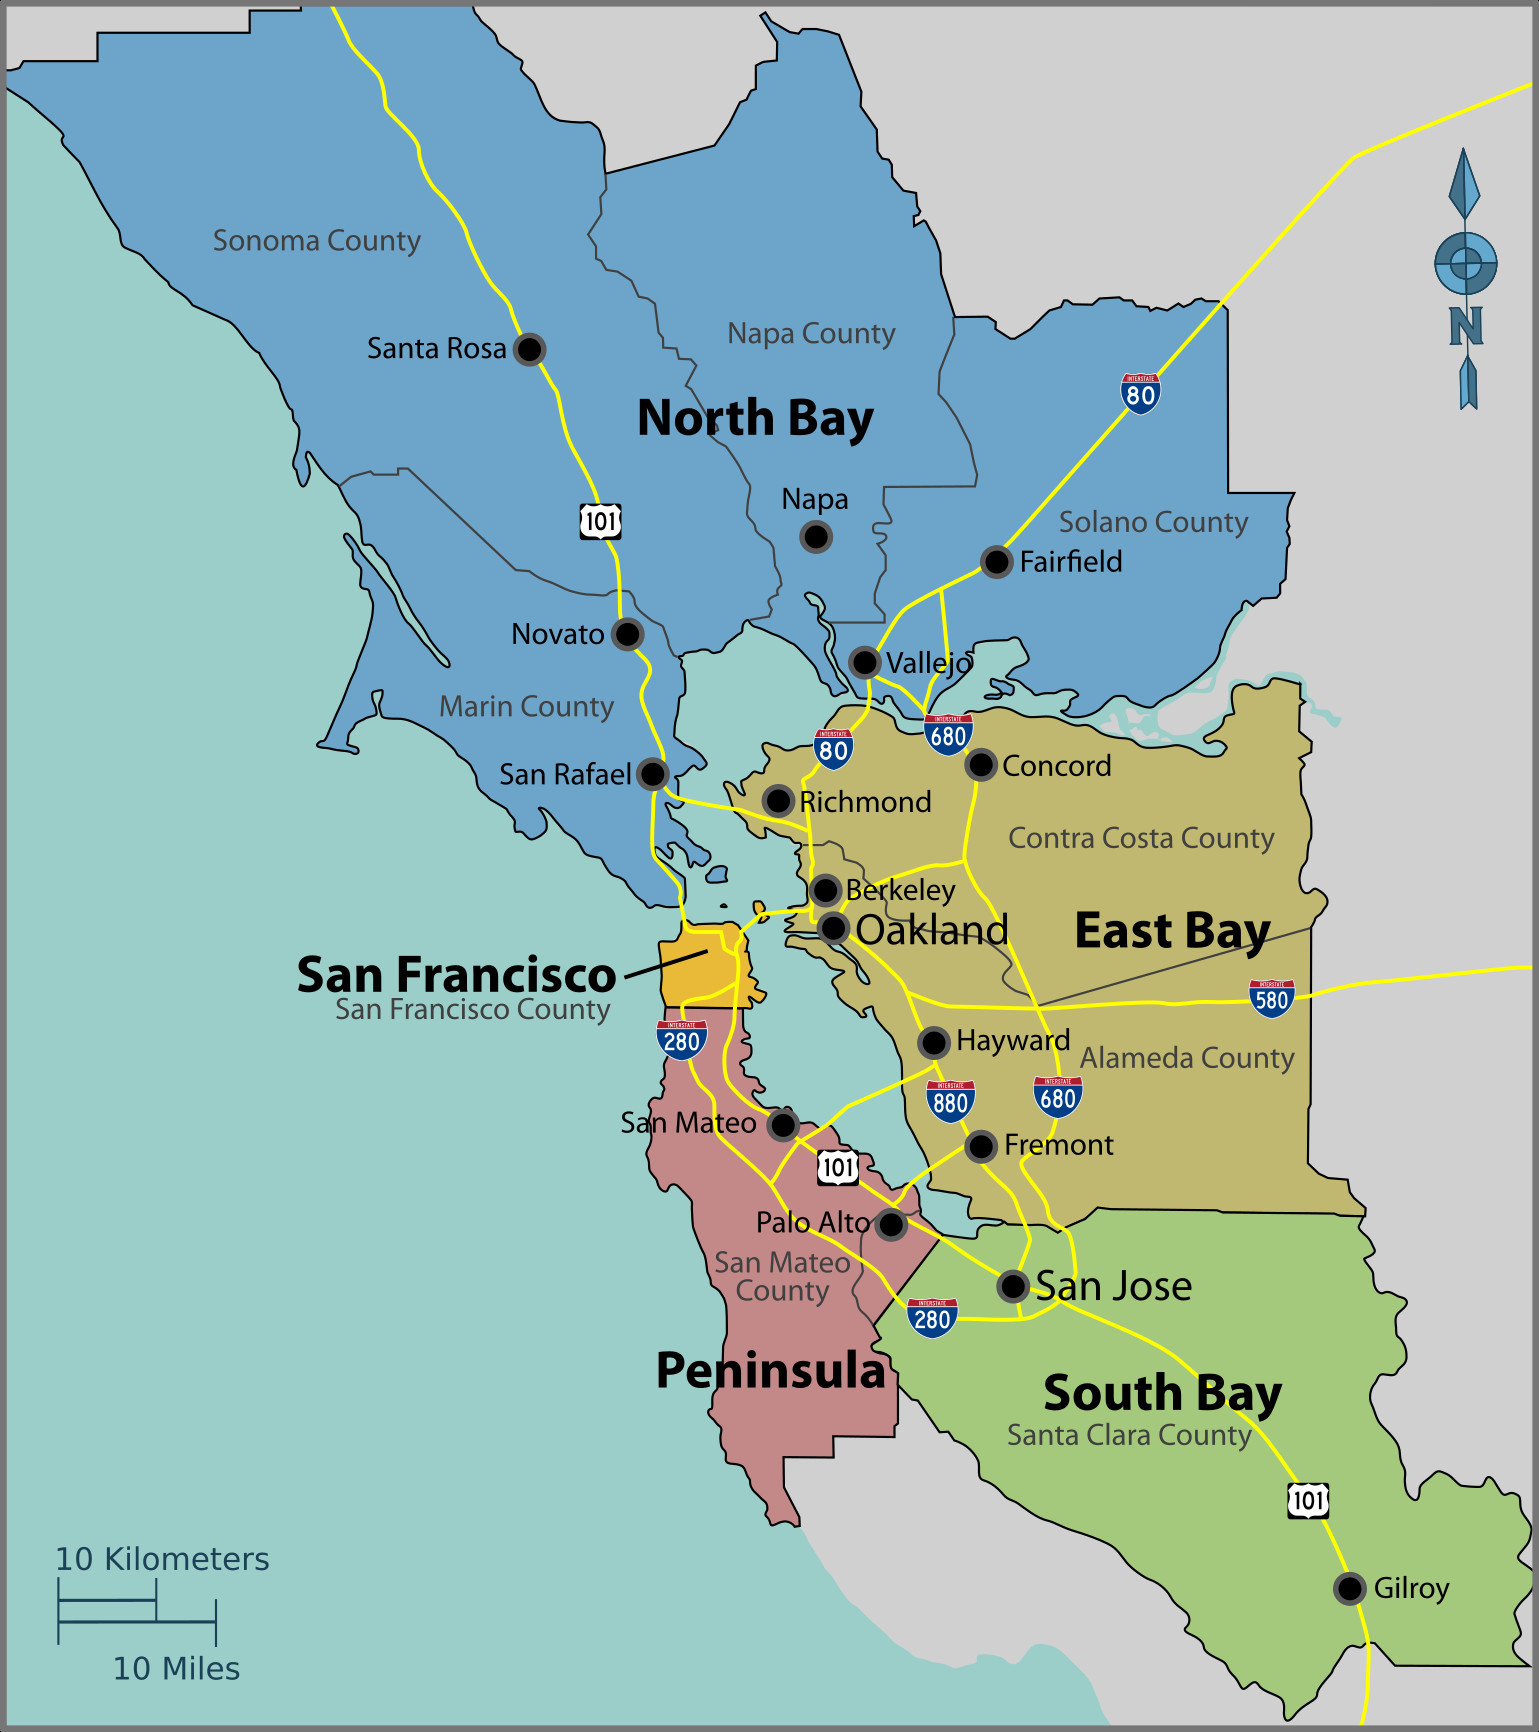 Where Is San Bruno California On The Map Best Of San Francisco Bay - San Bruno California Map